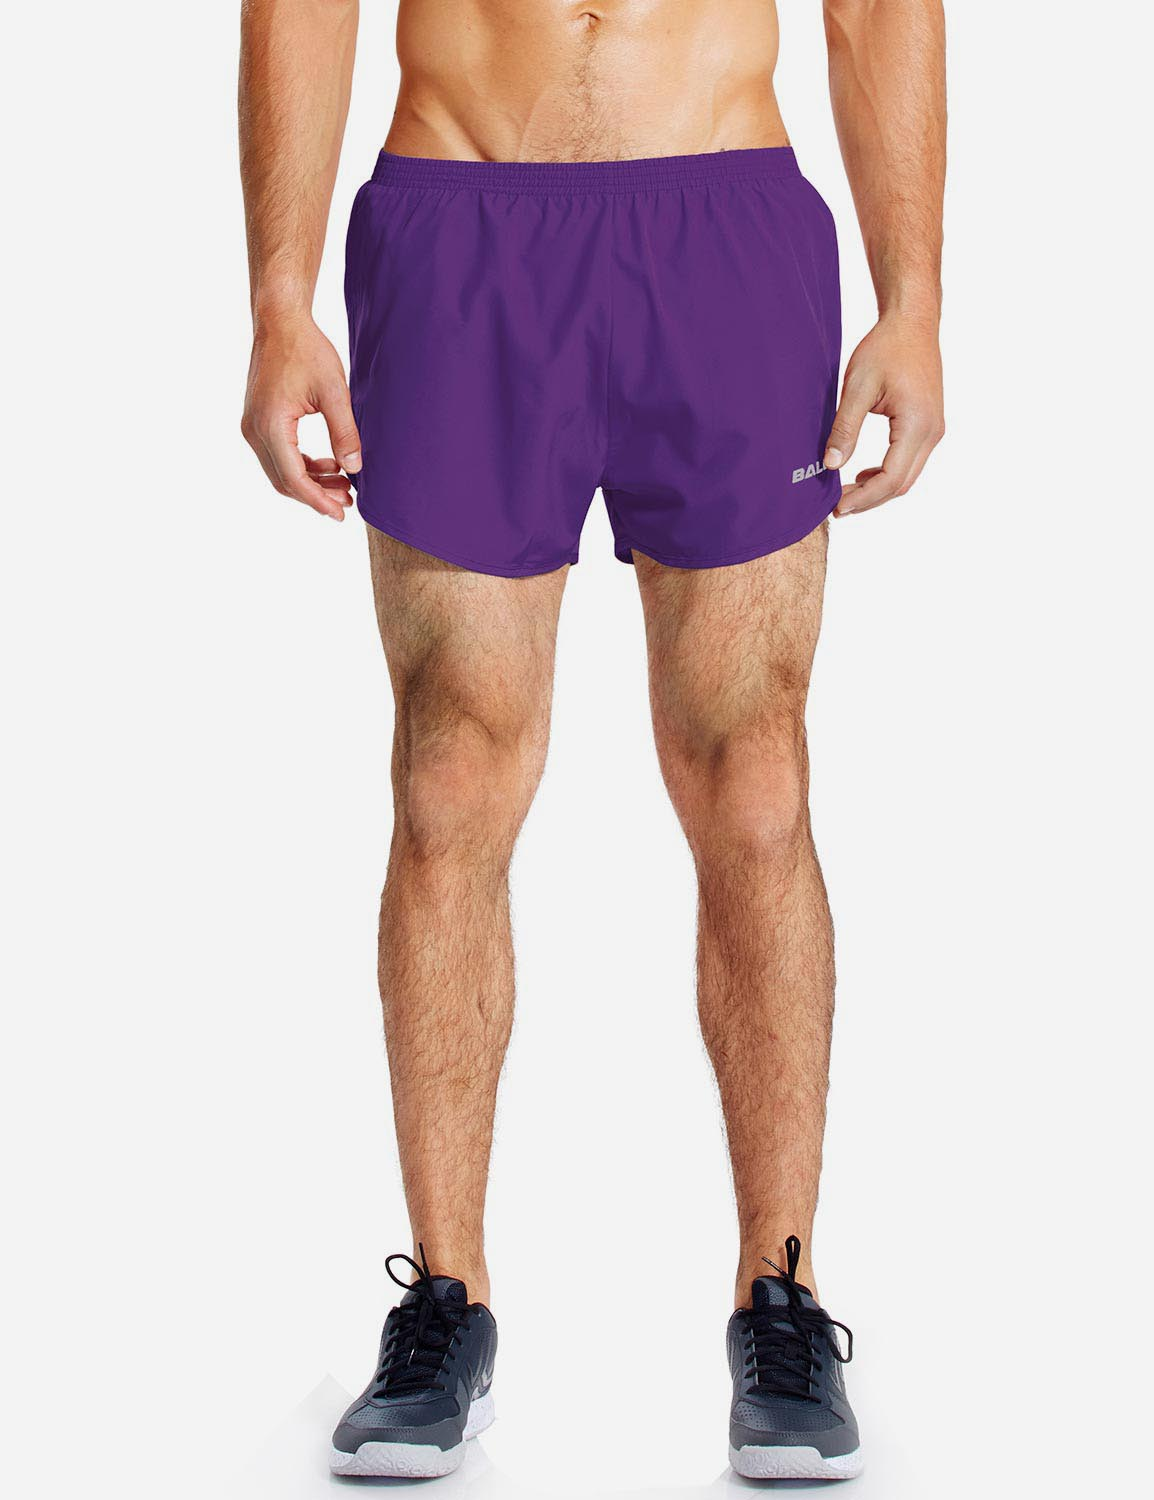 Baleaf Mens 3'' Split-Leg Basic Running Shorts purple front